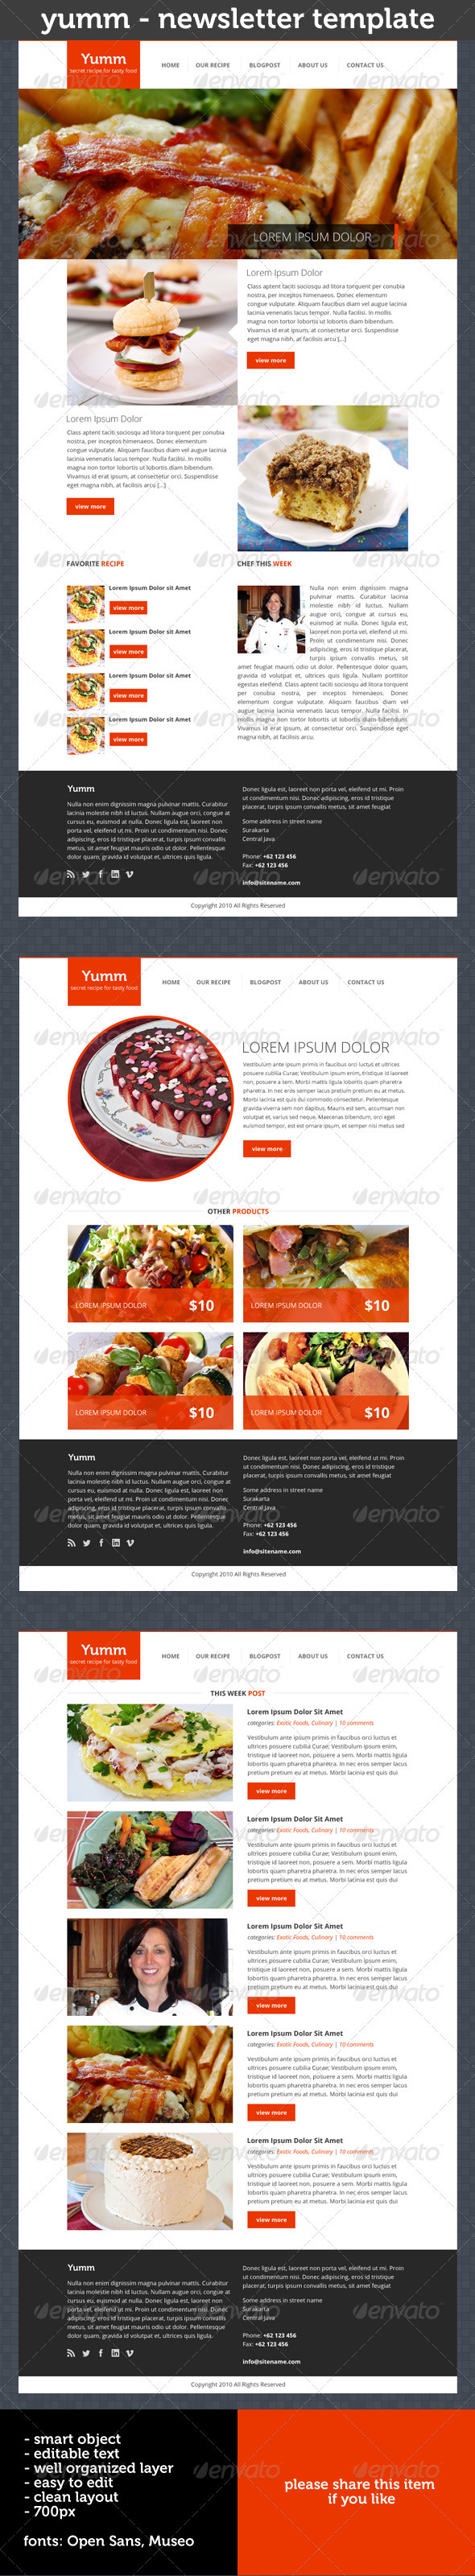 GraphicRiver Yumm Newsletter Template 3918272